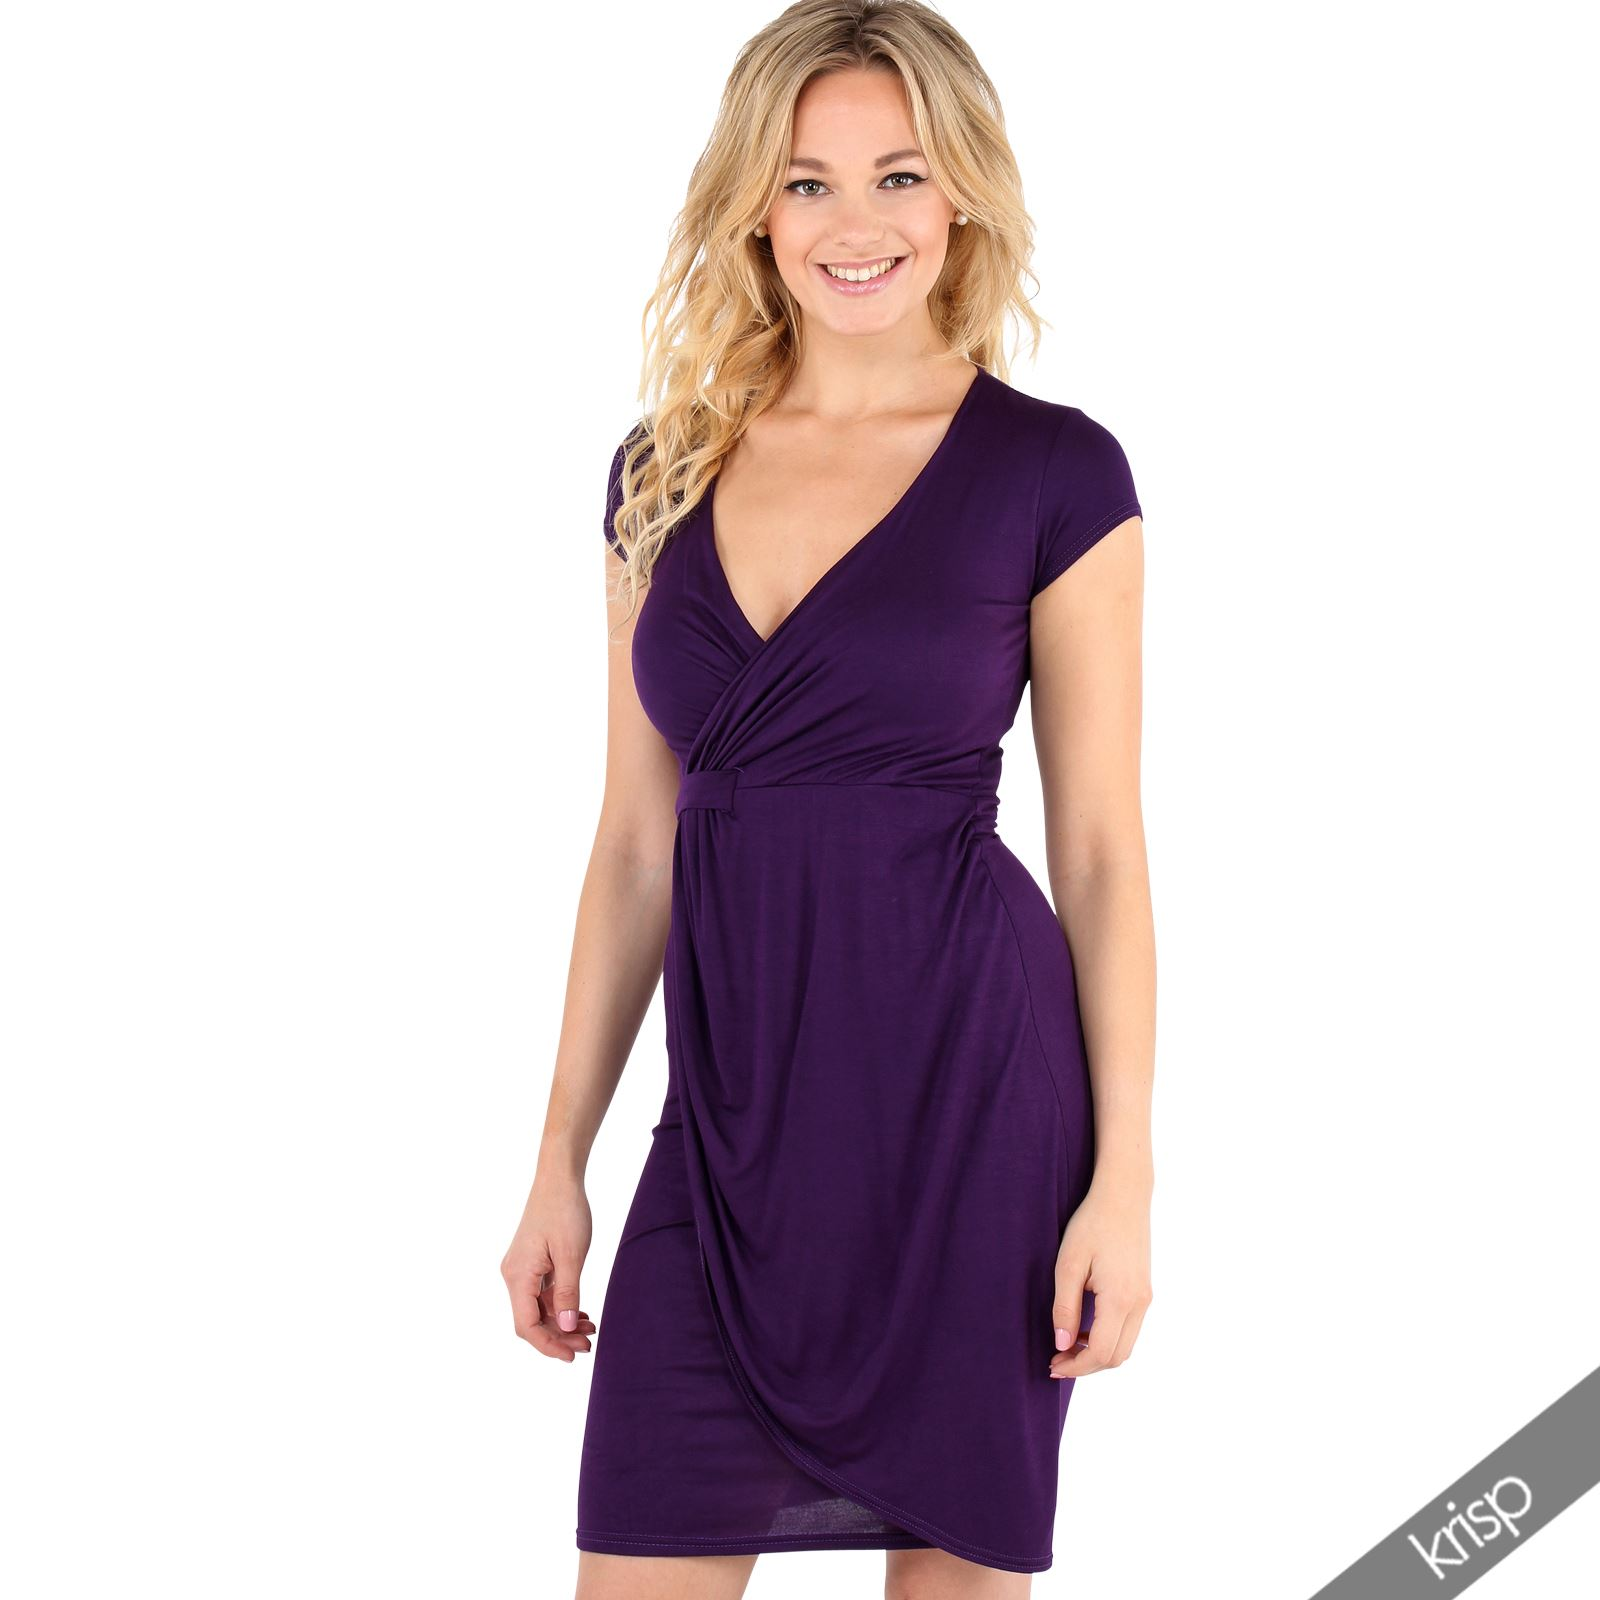 Womens-V-Neck-Wrap-Front-Top-Jersey-Midi-Dress-Cap-Sleeve-Pleated-Skirt-Party